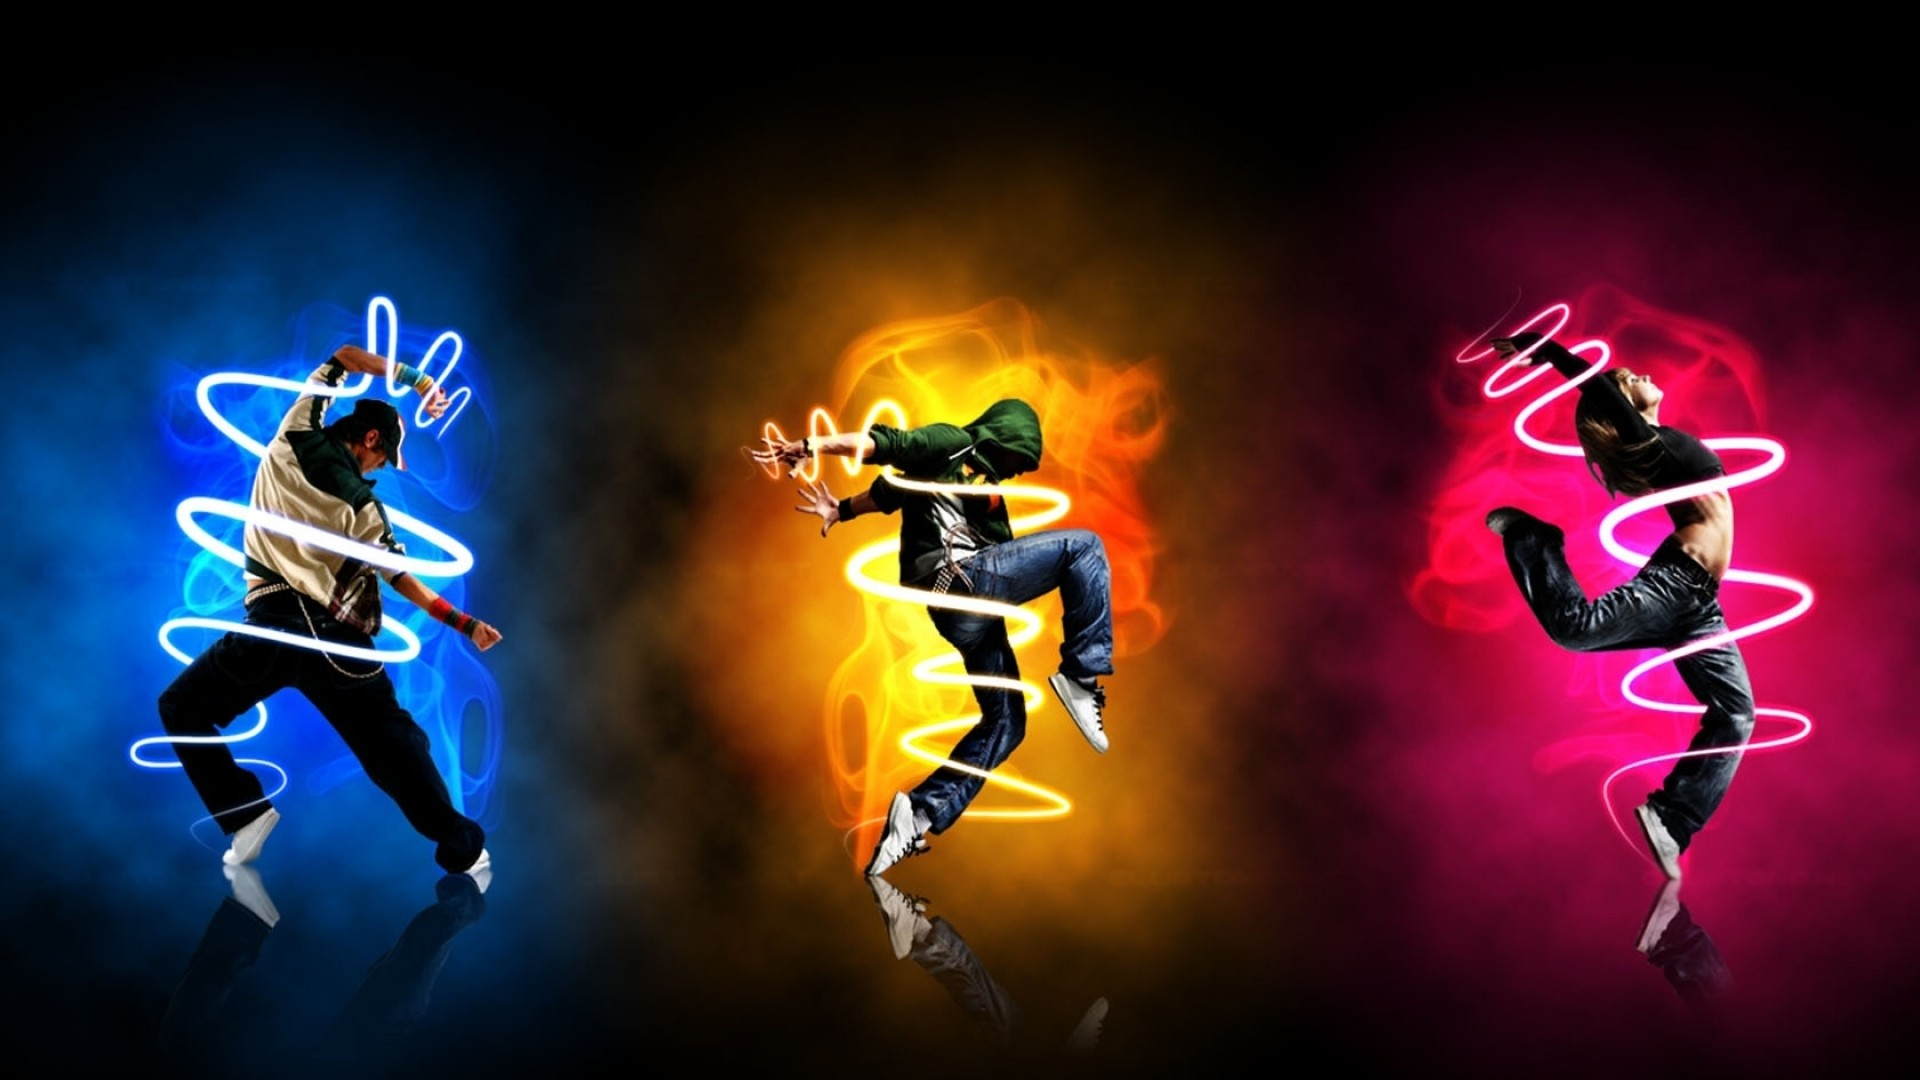 dab dance wallpaper (64+ images)